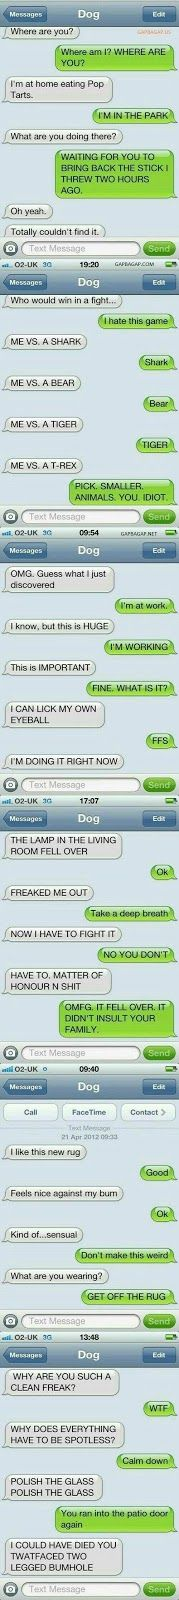 Top 6 Hilarious Text Messages ft. Funny Dogs